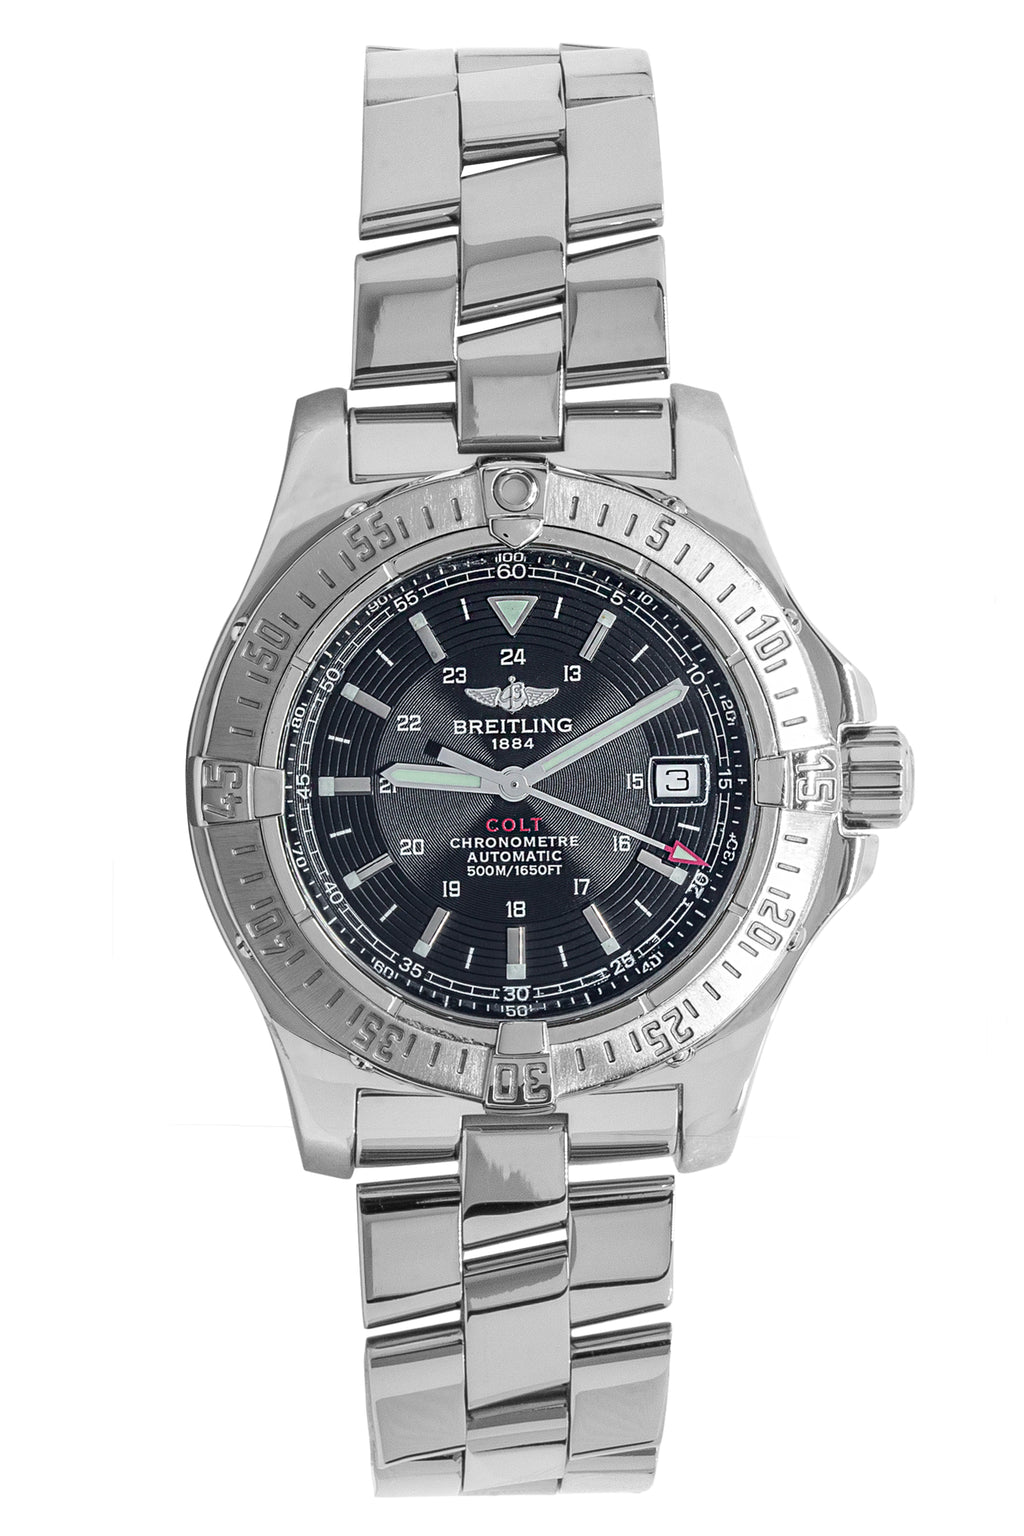 BREITLING Colt Automatic 500m A17380 (2006) 41mm – Black Dial & Stainless Steel